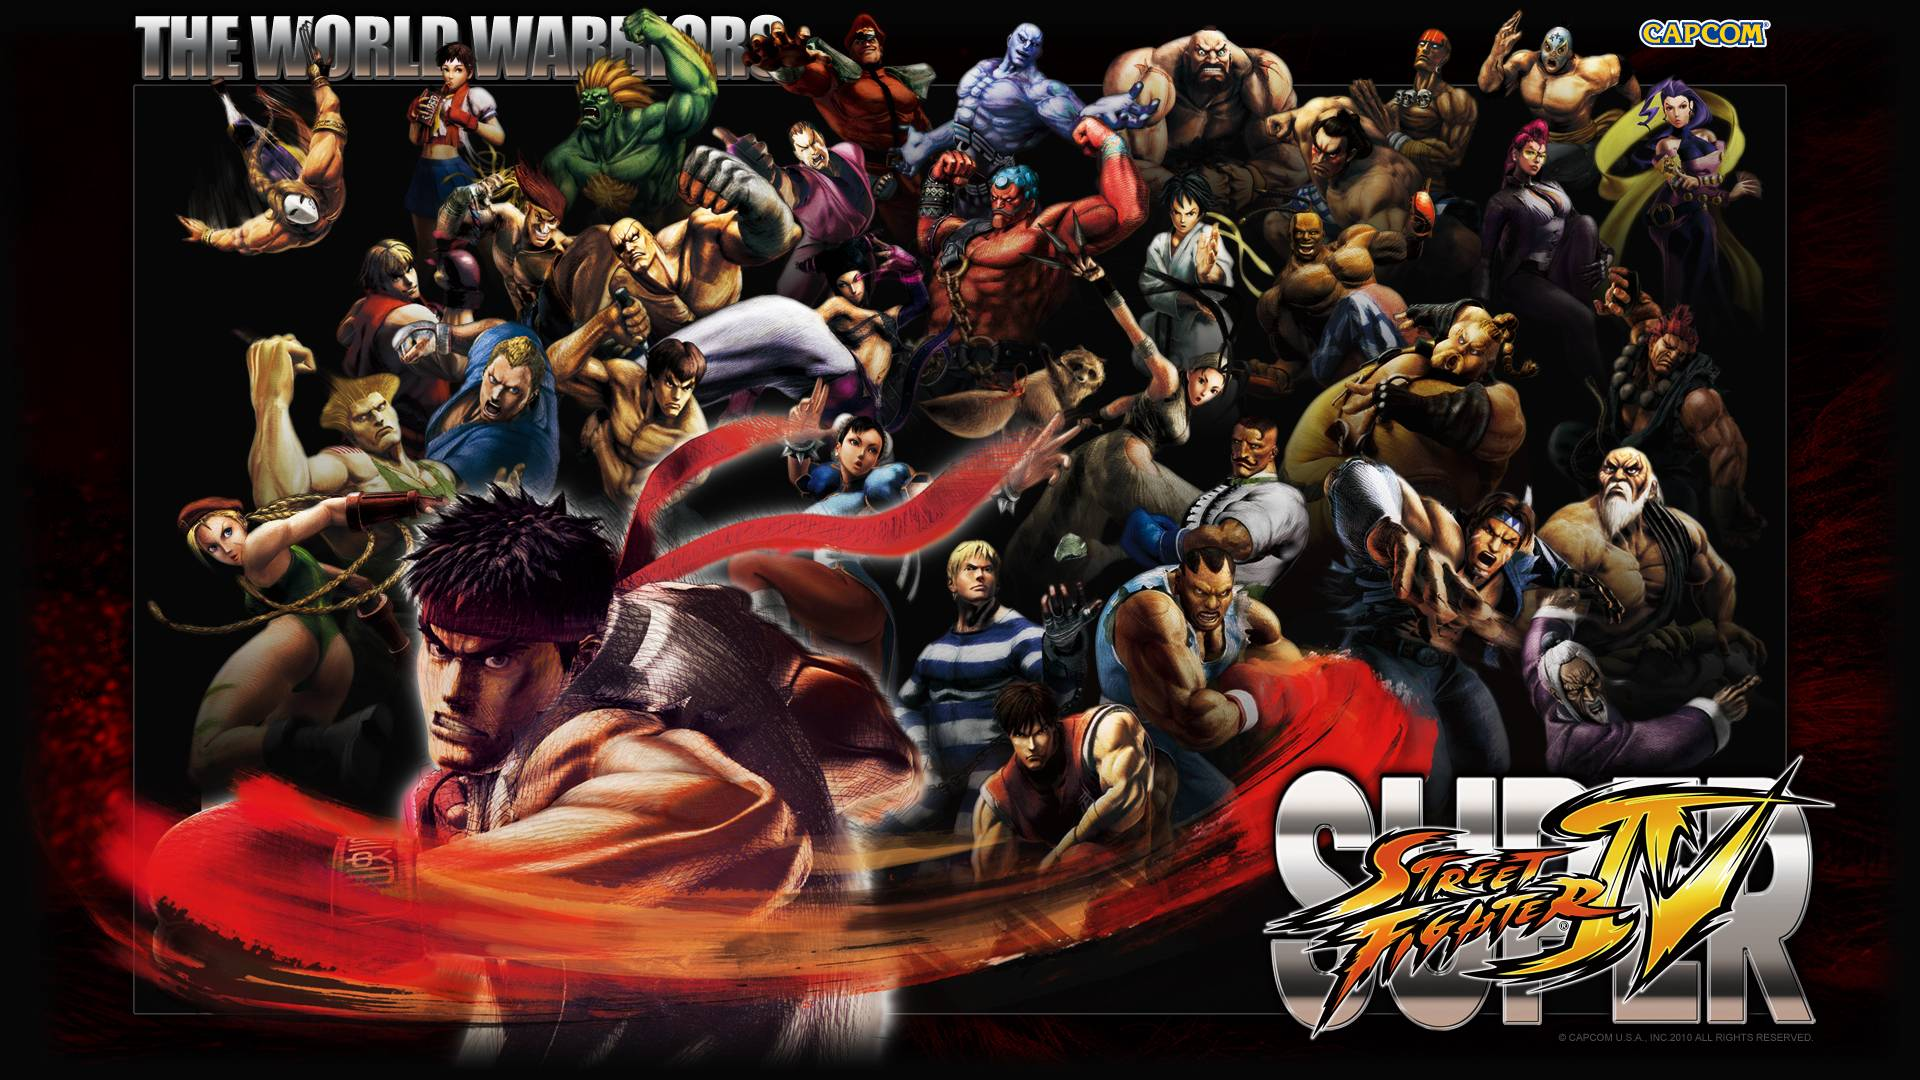 Street Fighter Wallpapers HD - Wallpaper Cave